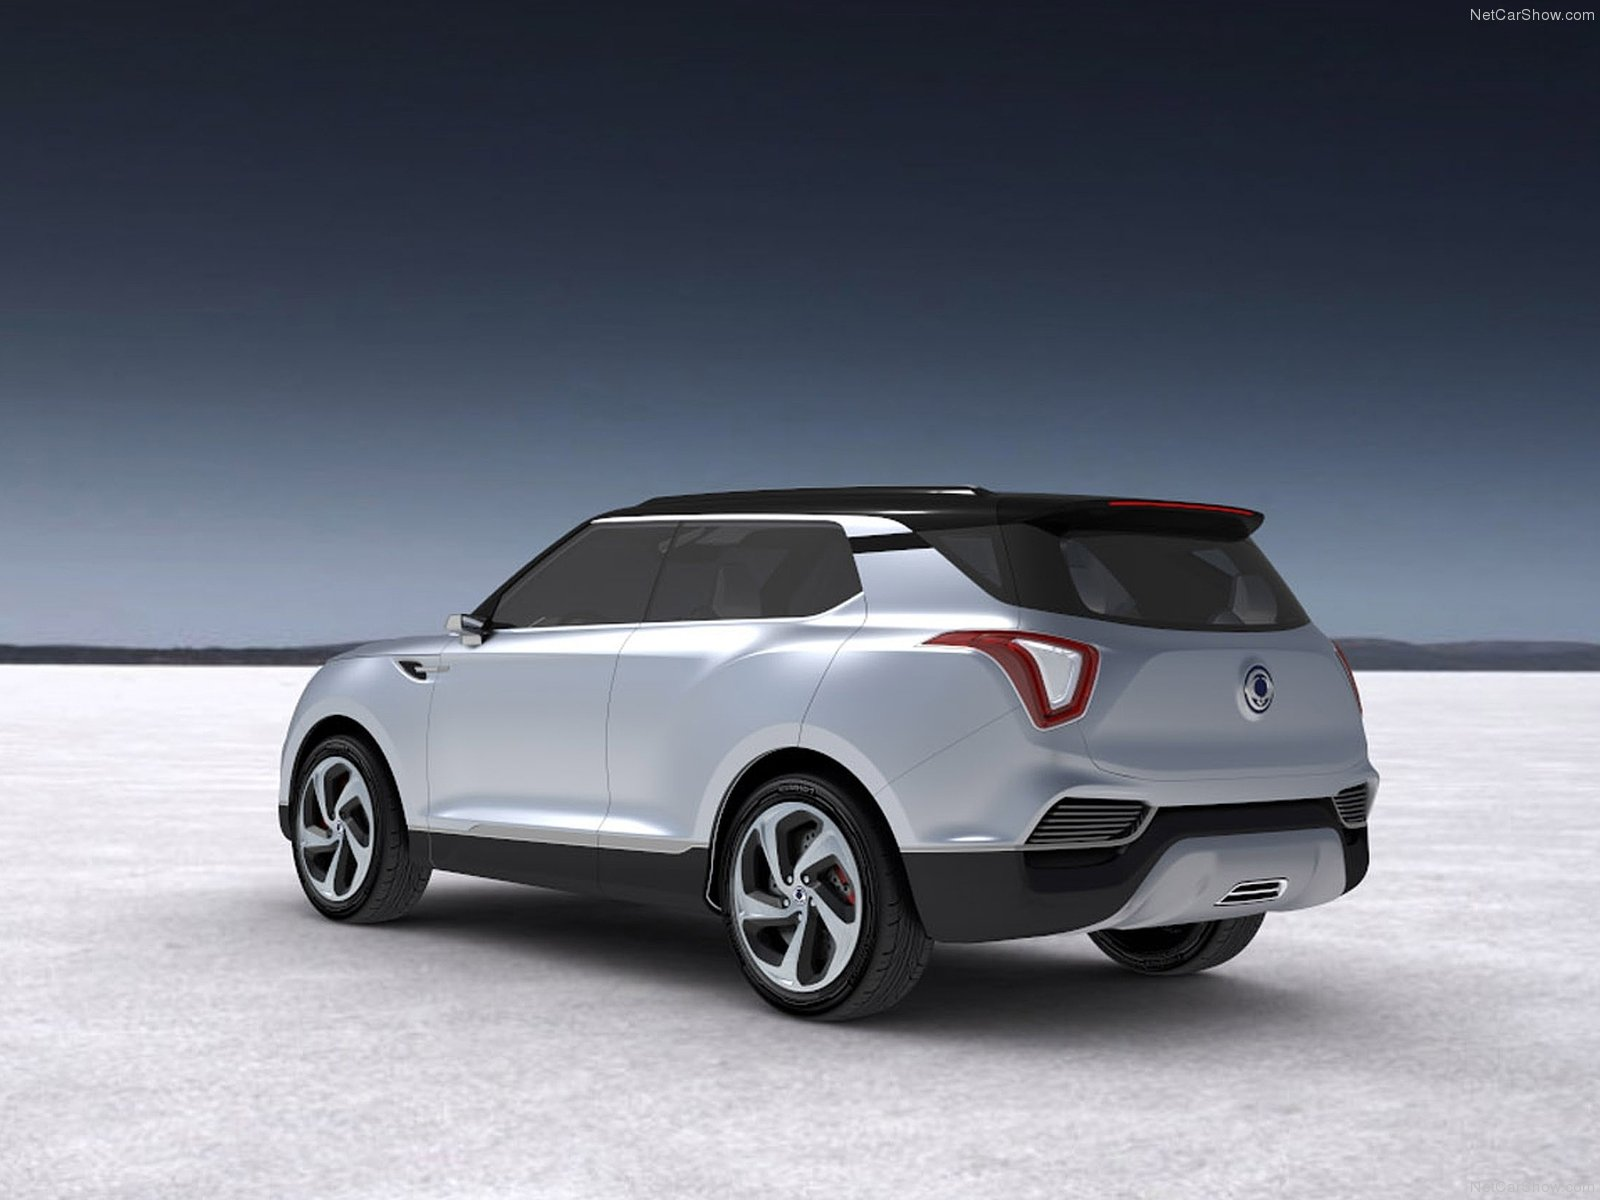 SsangYong XLV Concept photo 111263